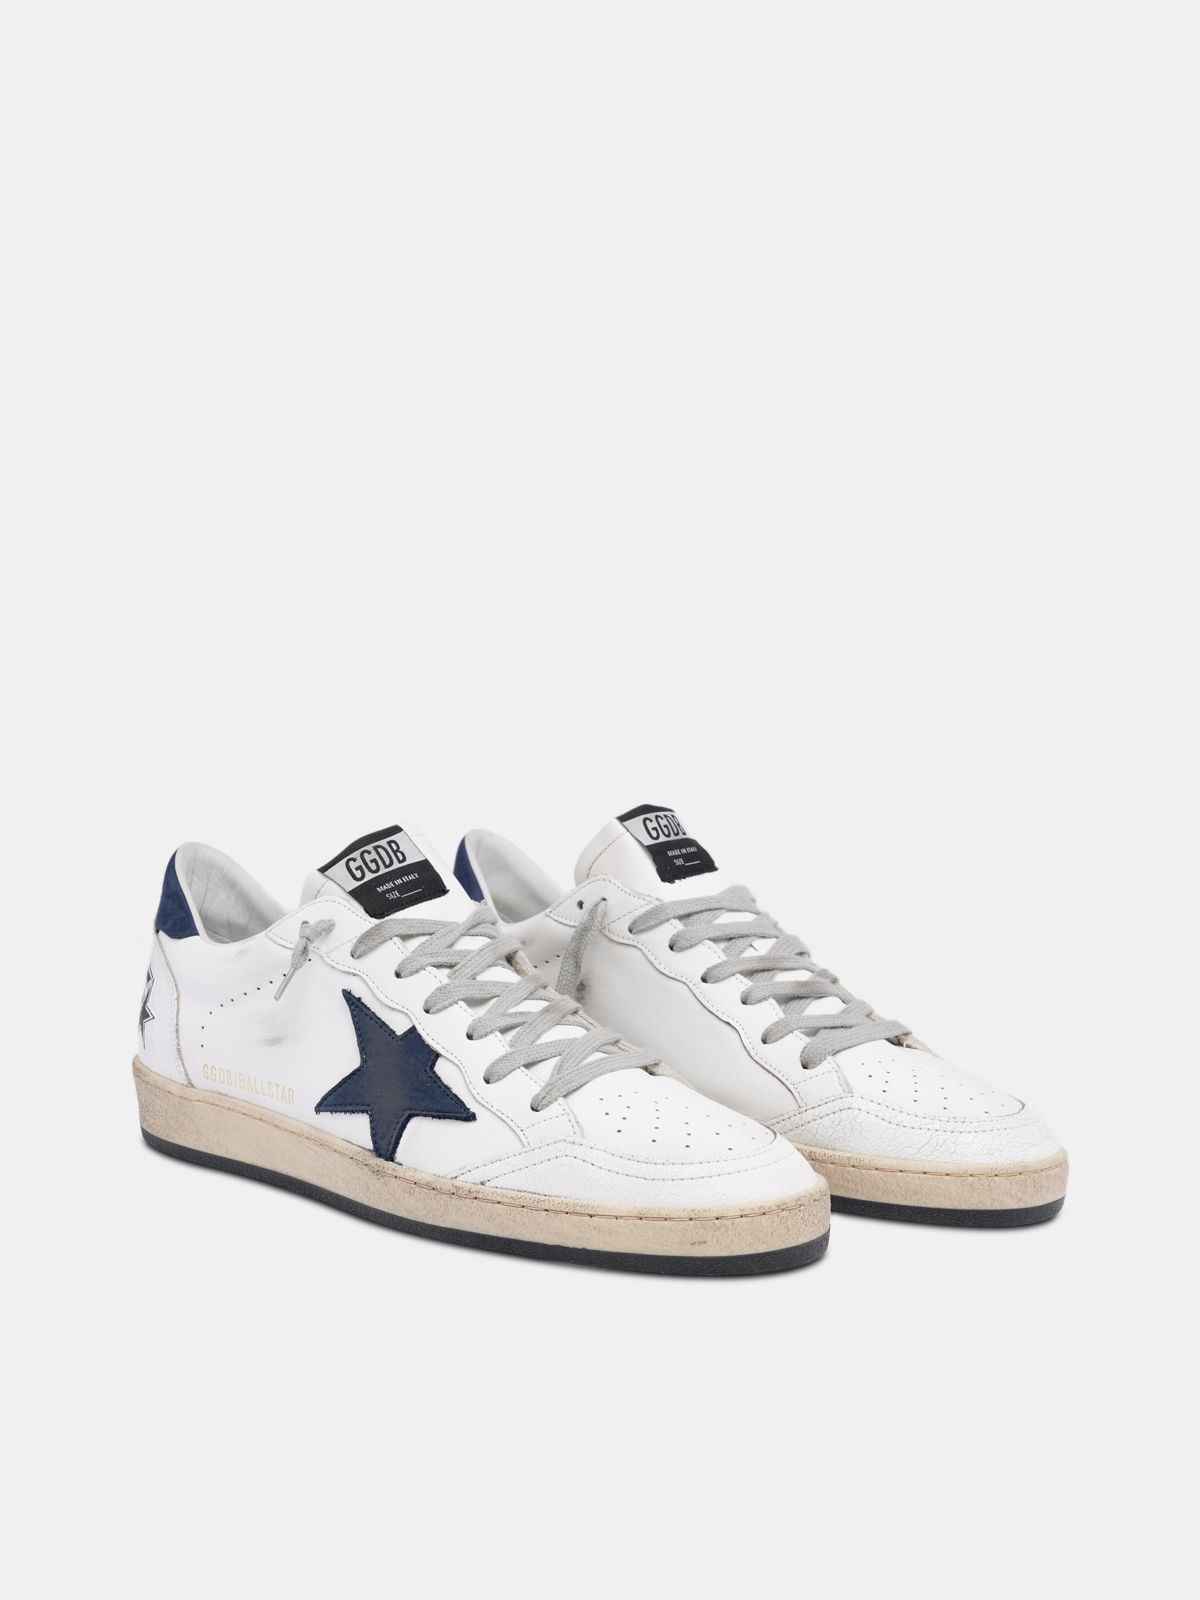 Golden Goose - White Ball Star sneakers with blue star in